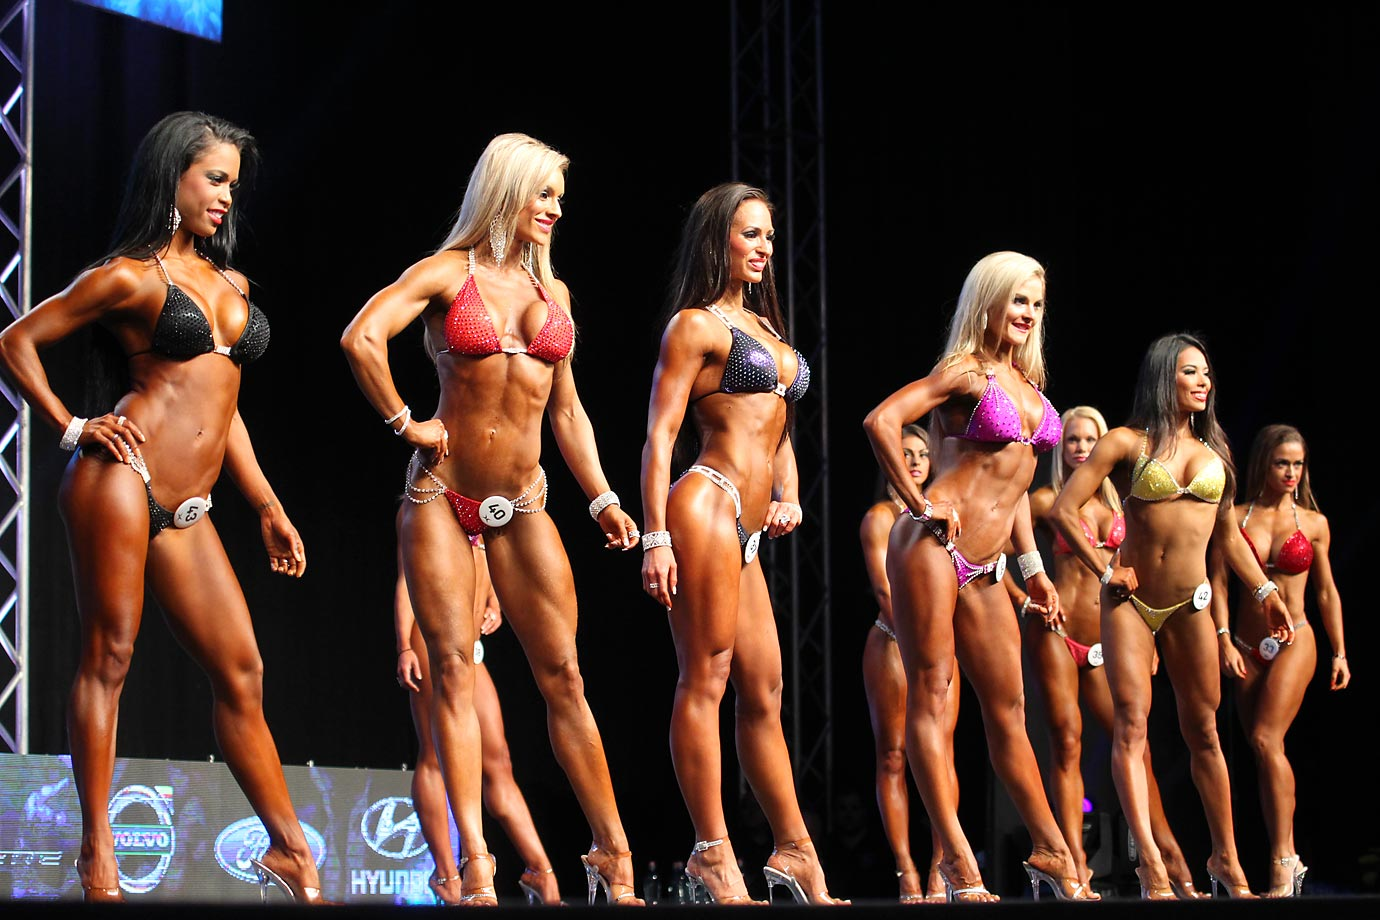 Competitors of the Pro Bikini category pose during the 3rd annual EVLS Prague Pro 2014 bodybuilding contest.